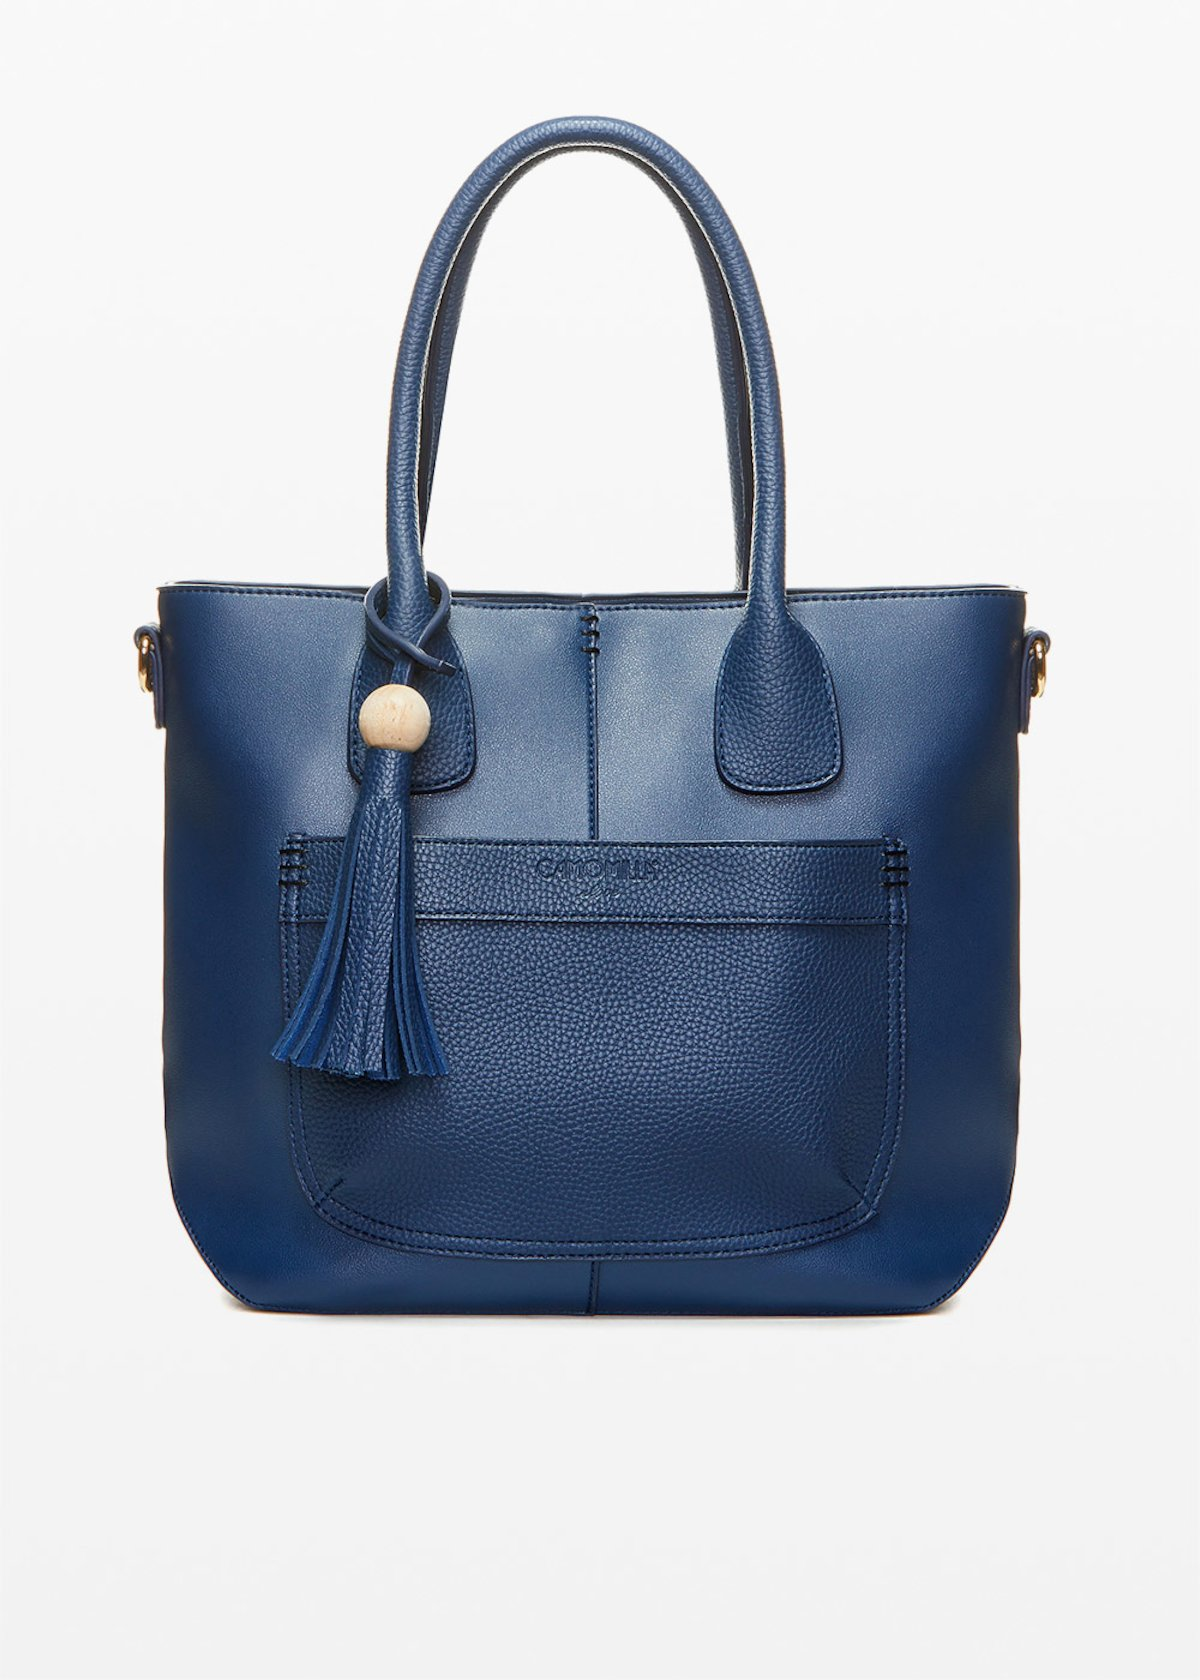 Faux leather Brittny handbag deer print with pocket and tassel detail - Medium Blue - Woman - Category image